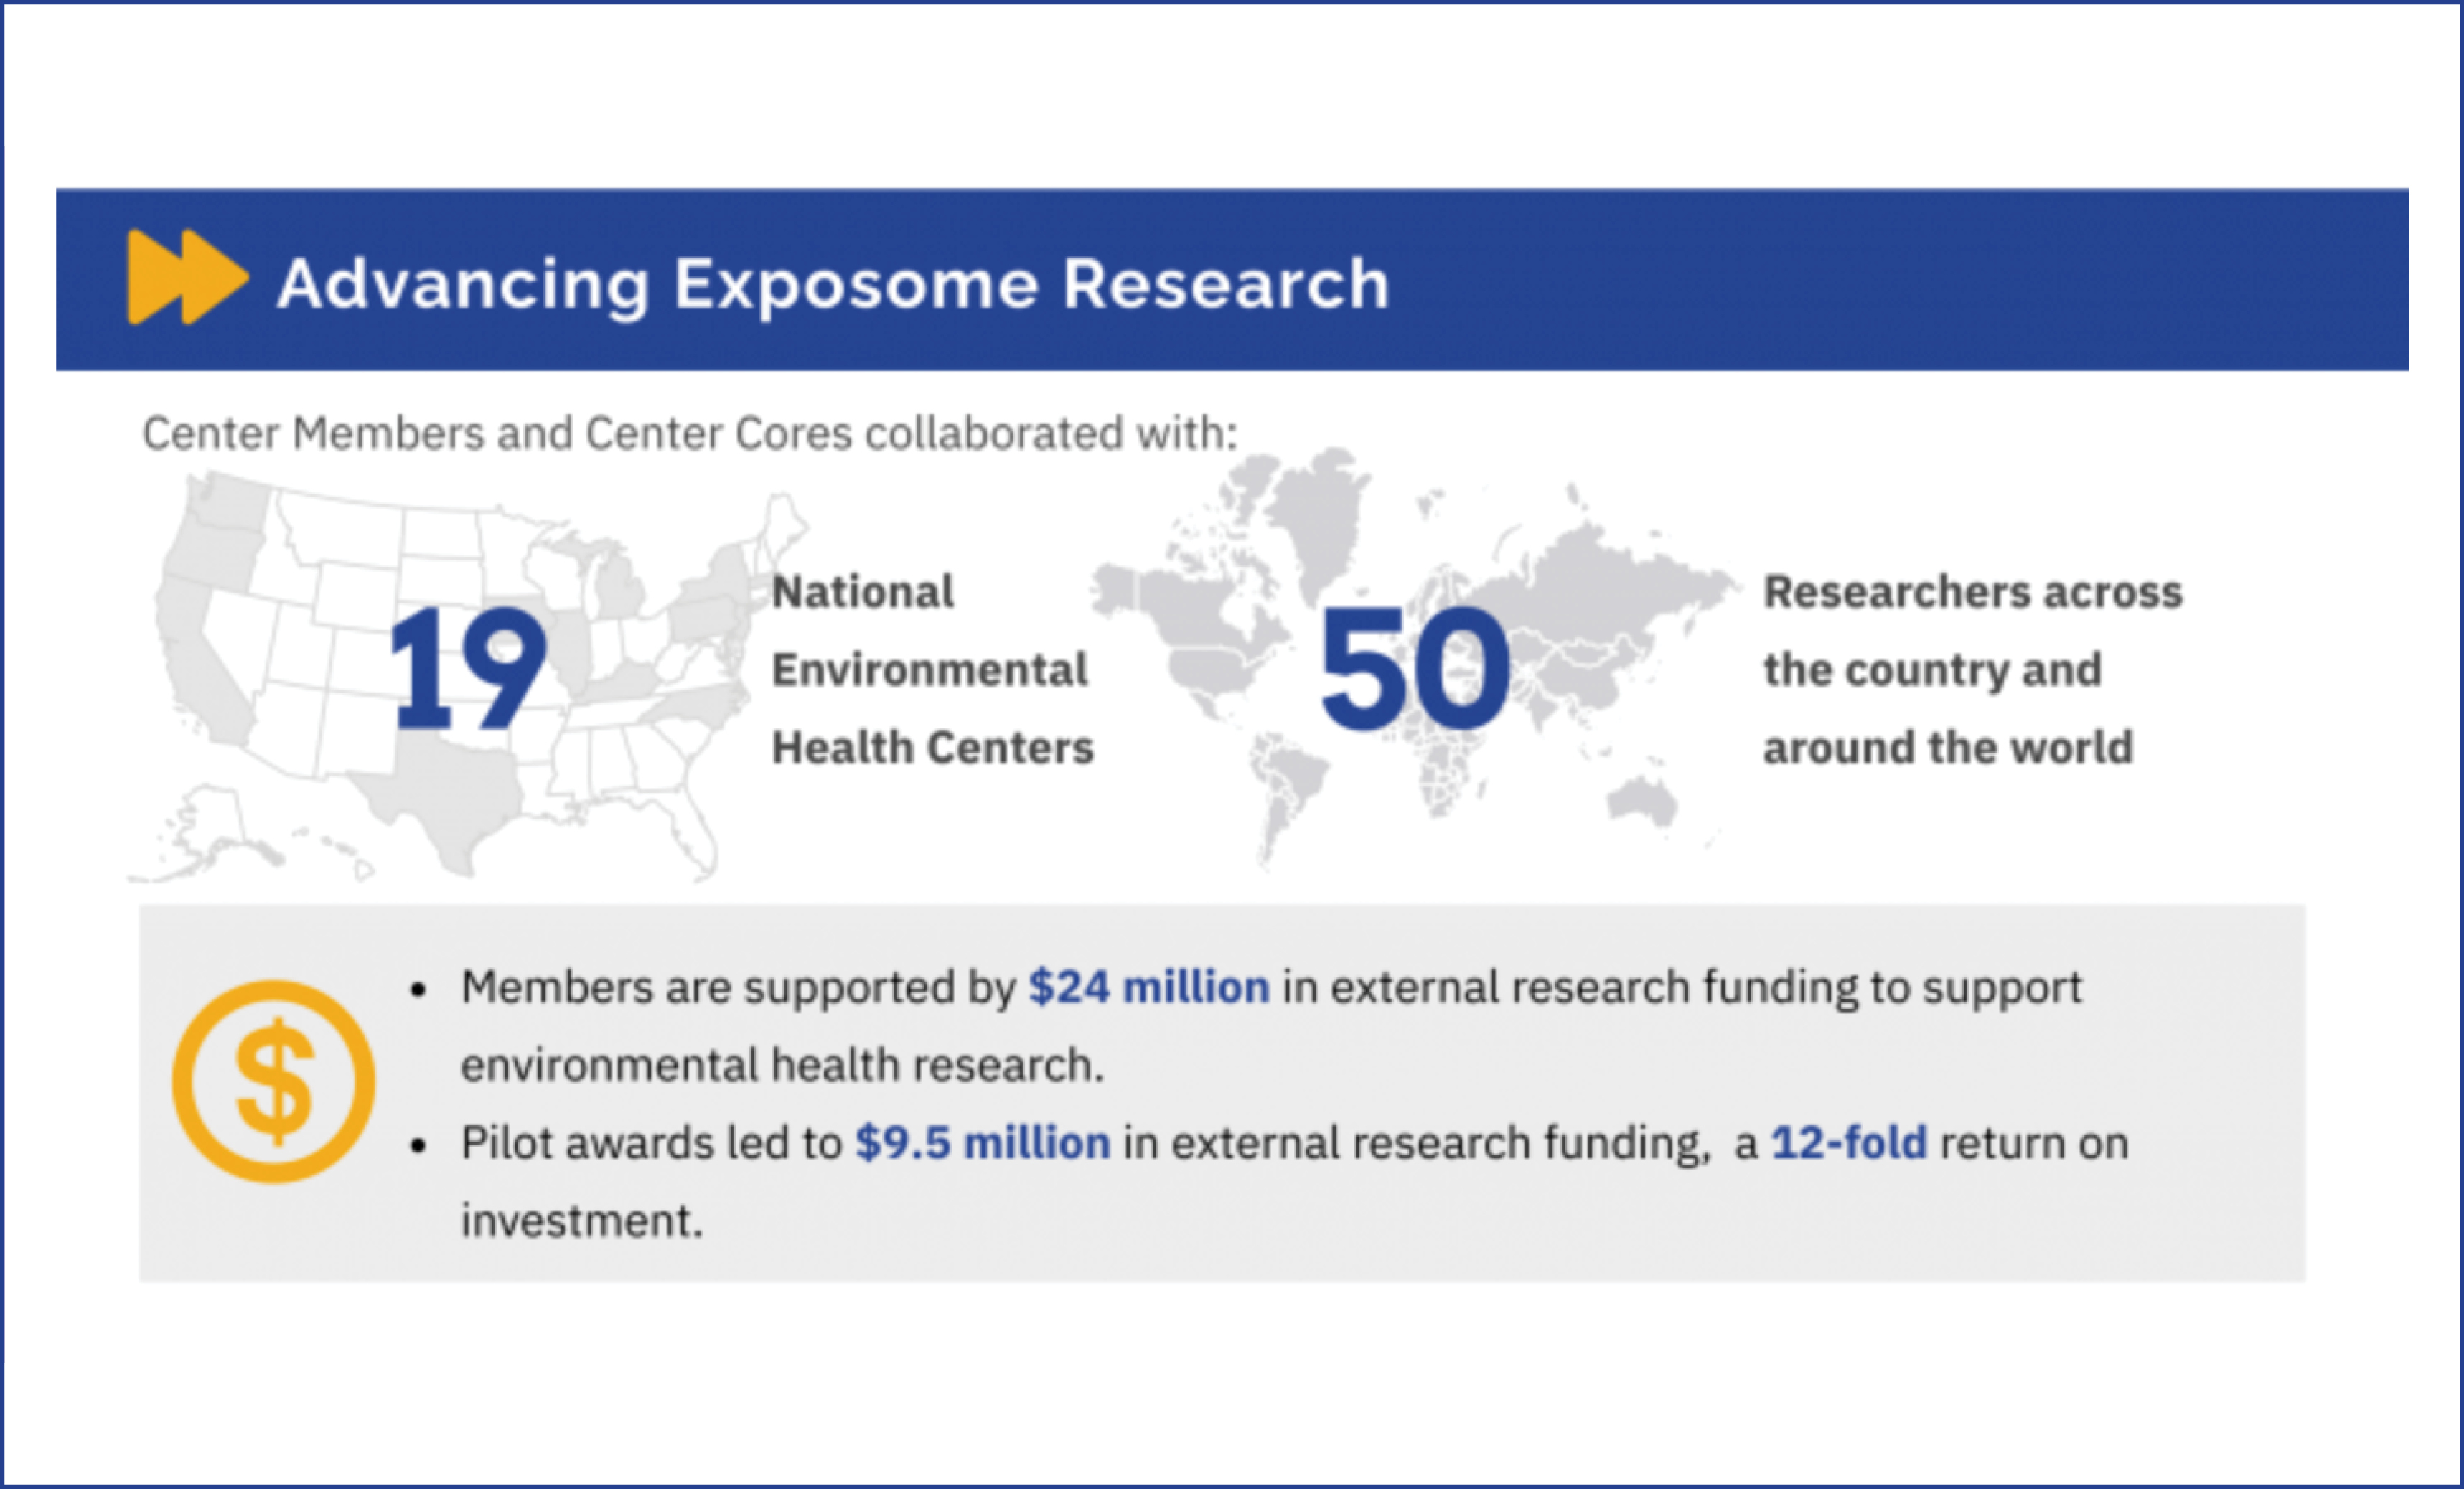 HERCULES Exposome Research Center